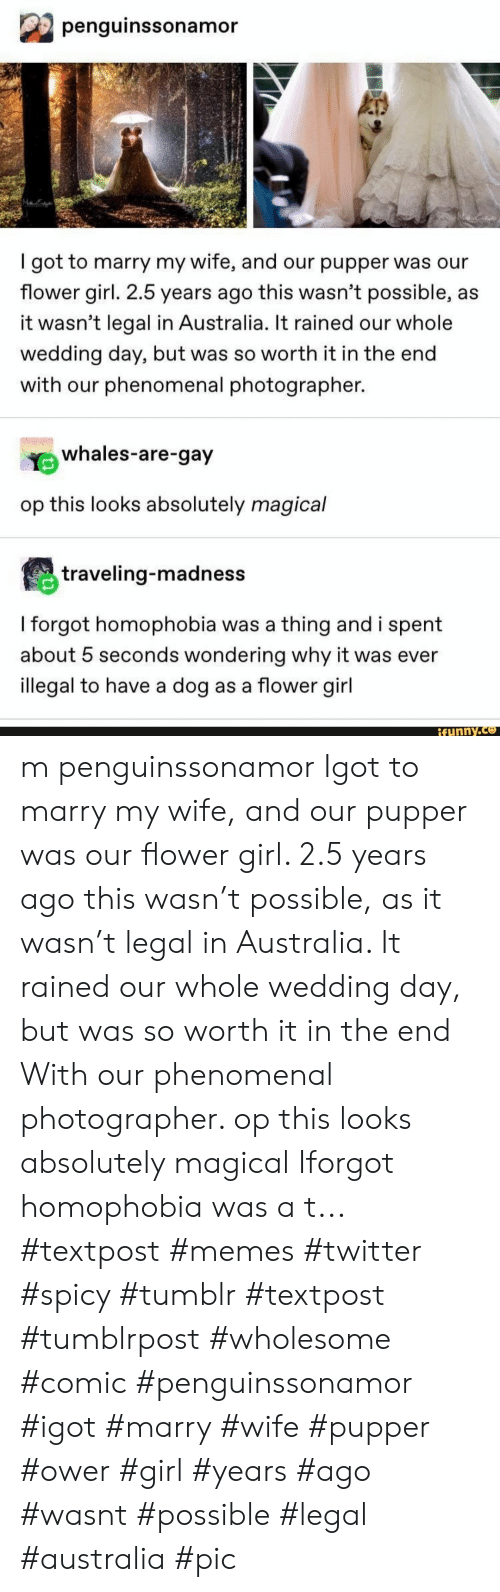 pupper: penguinssonamor  got to marry my wife, and our pupper was our  flower girl. 2.5 years ago this wasn't possible, as  it wasn't legal in Australia. It rained our whole  wedding day, but was so worth it in the end  with our phenomenal photographer.  whales-are-gay  op this looks absolutely magical  traveling-madness  I forgot homophobia was a thing and i spent  about 5 seconds wondering why it was ever  illegal to have a dog as a flower girl  ifunny.co m penguinssonamor Igot to marry my wife, and our pupper was our flower girl. 2.5 years ago this wasn't possible, as it wasn't legal in Australia. It rained our whole wedding day, but was so worth it in the end With our phenomenal photographer. op this looks absolutely magical Iforgot homophobia was a t... #textpost #memes #twitter #spicy #tumblr #textpost #tumblrpost #wholesome #comic #penguinssonamor #igot #marry #wife #pupper #ower #girl #years #ago #wasnt #possible #legal #australia #pic